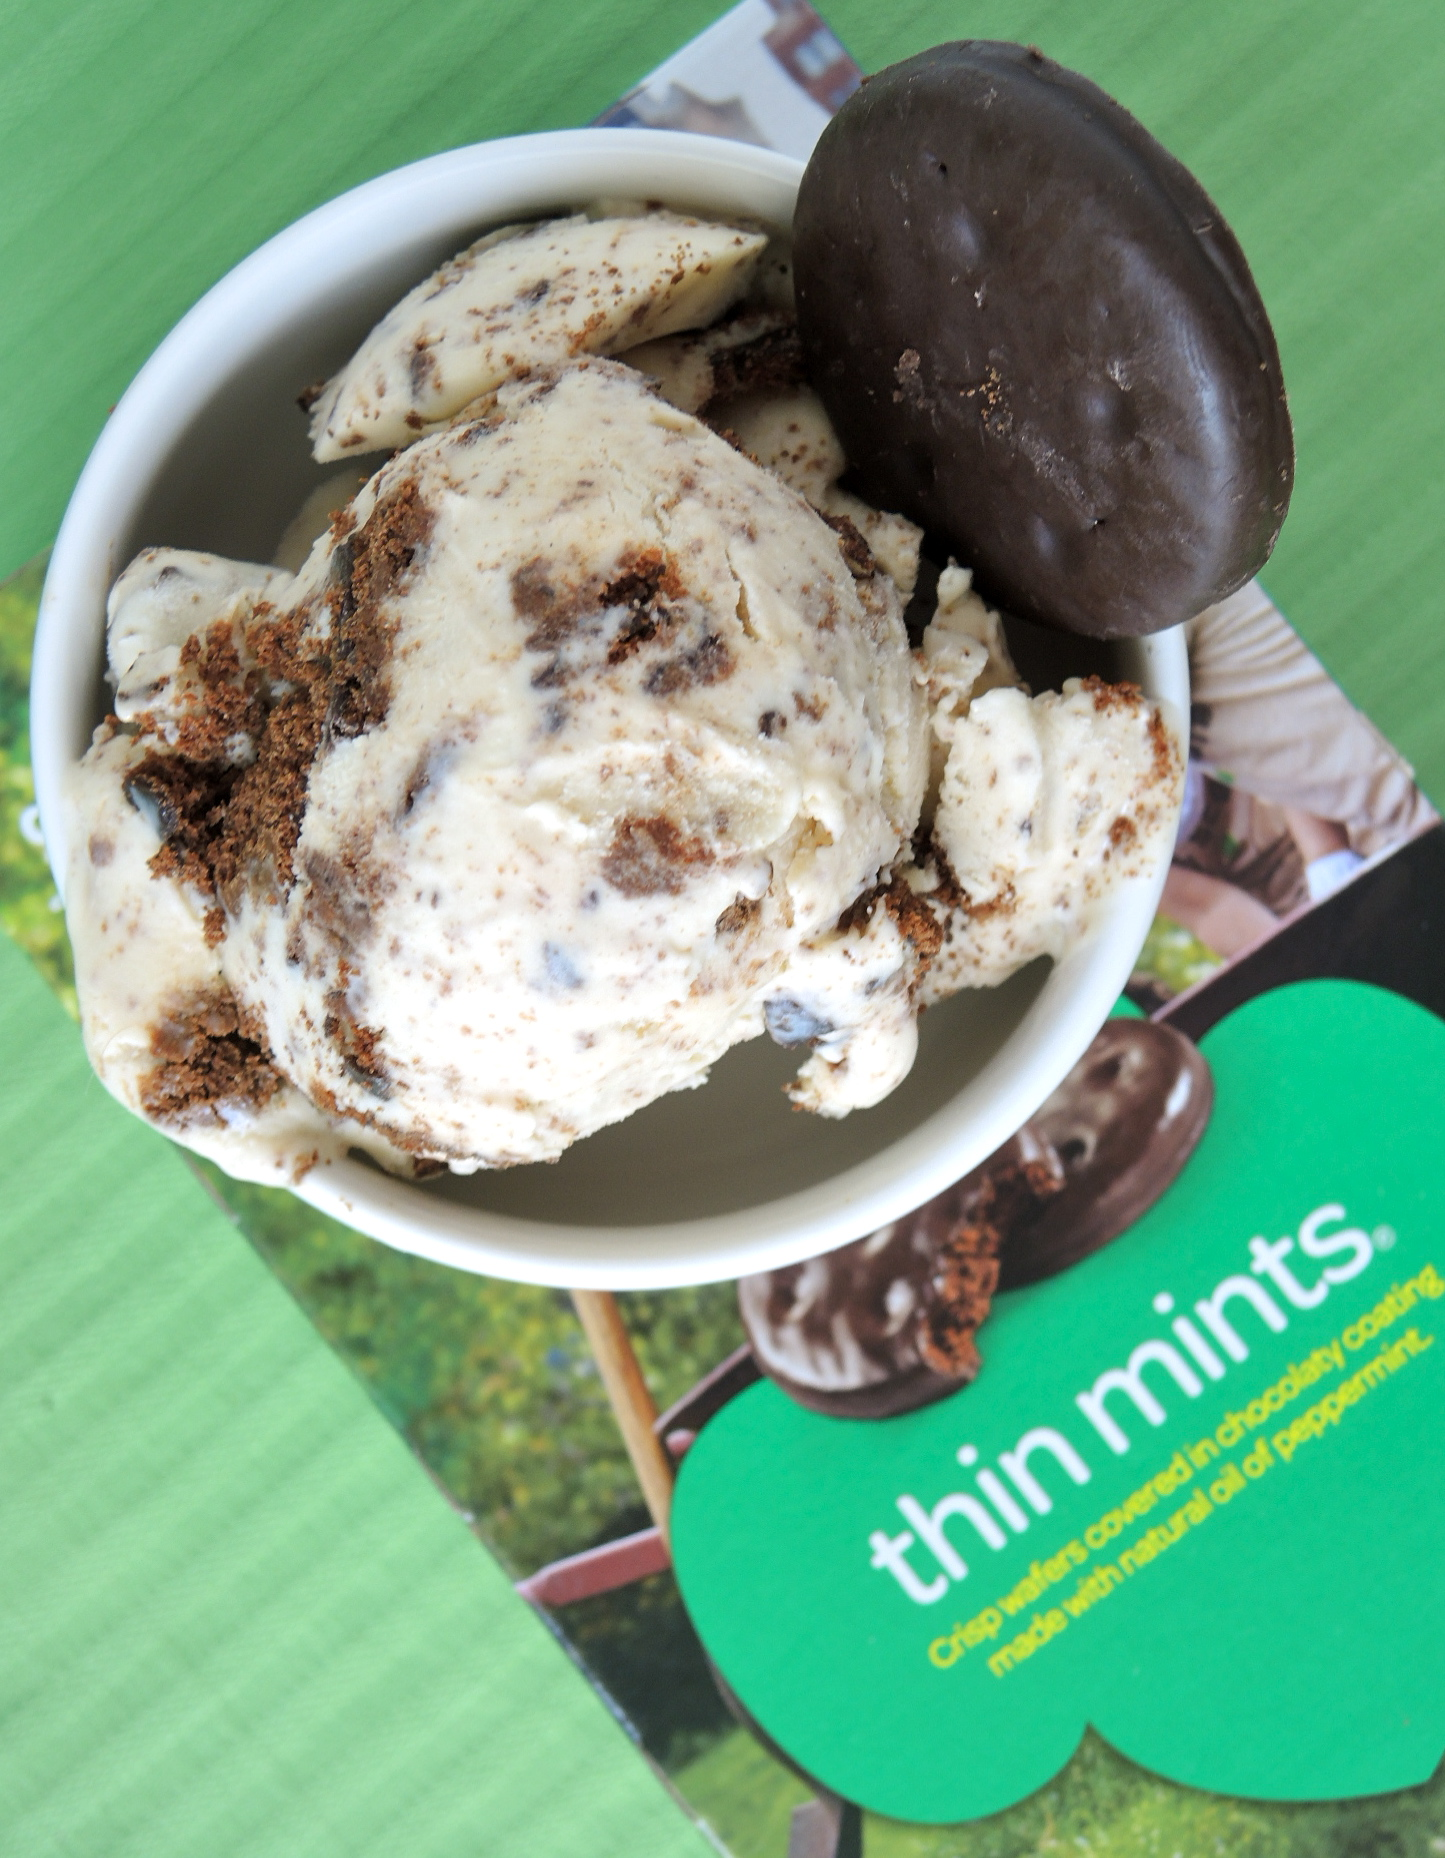 Ice Cream Sunday – Thin Mint Ice Cream